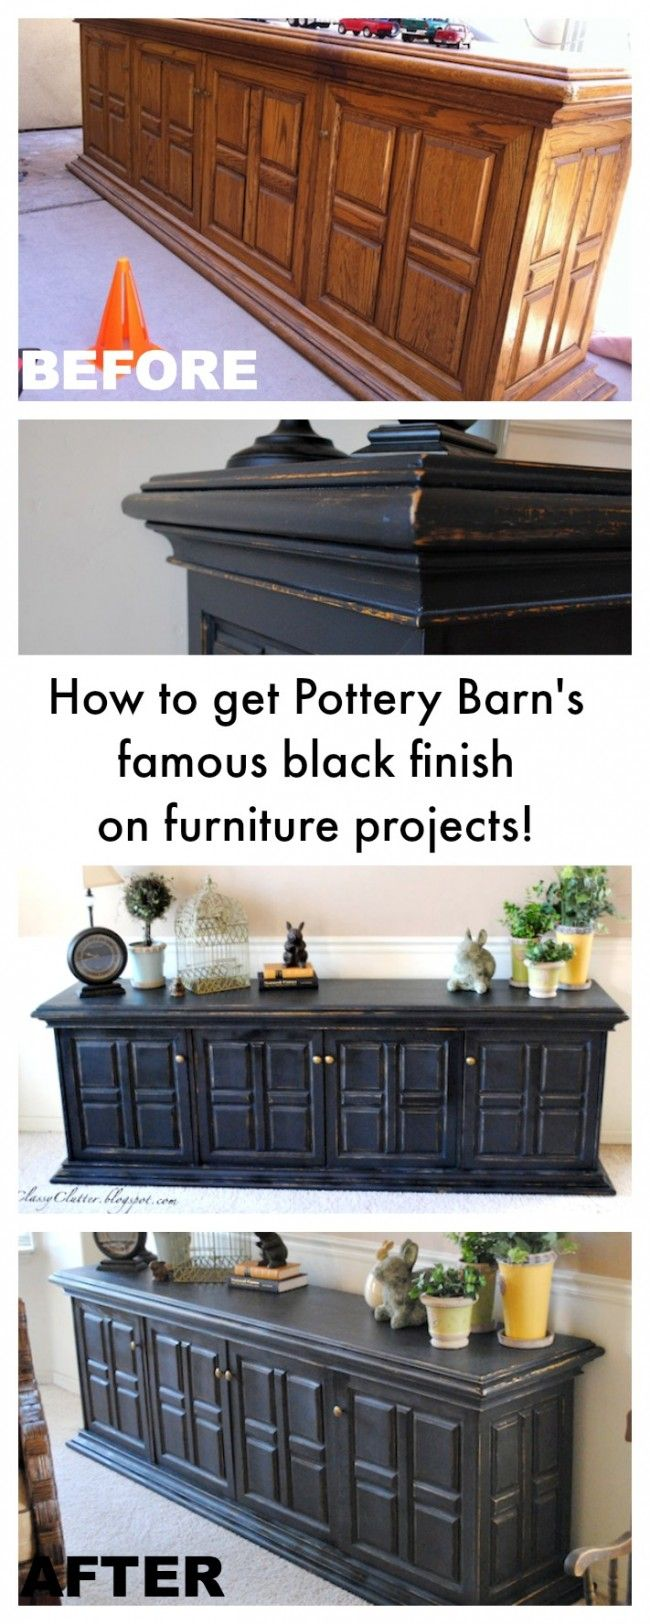 stores that sell nike shoes Pottery Barn Black Furniture Finish Tutorial   www classyclutter net